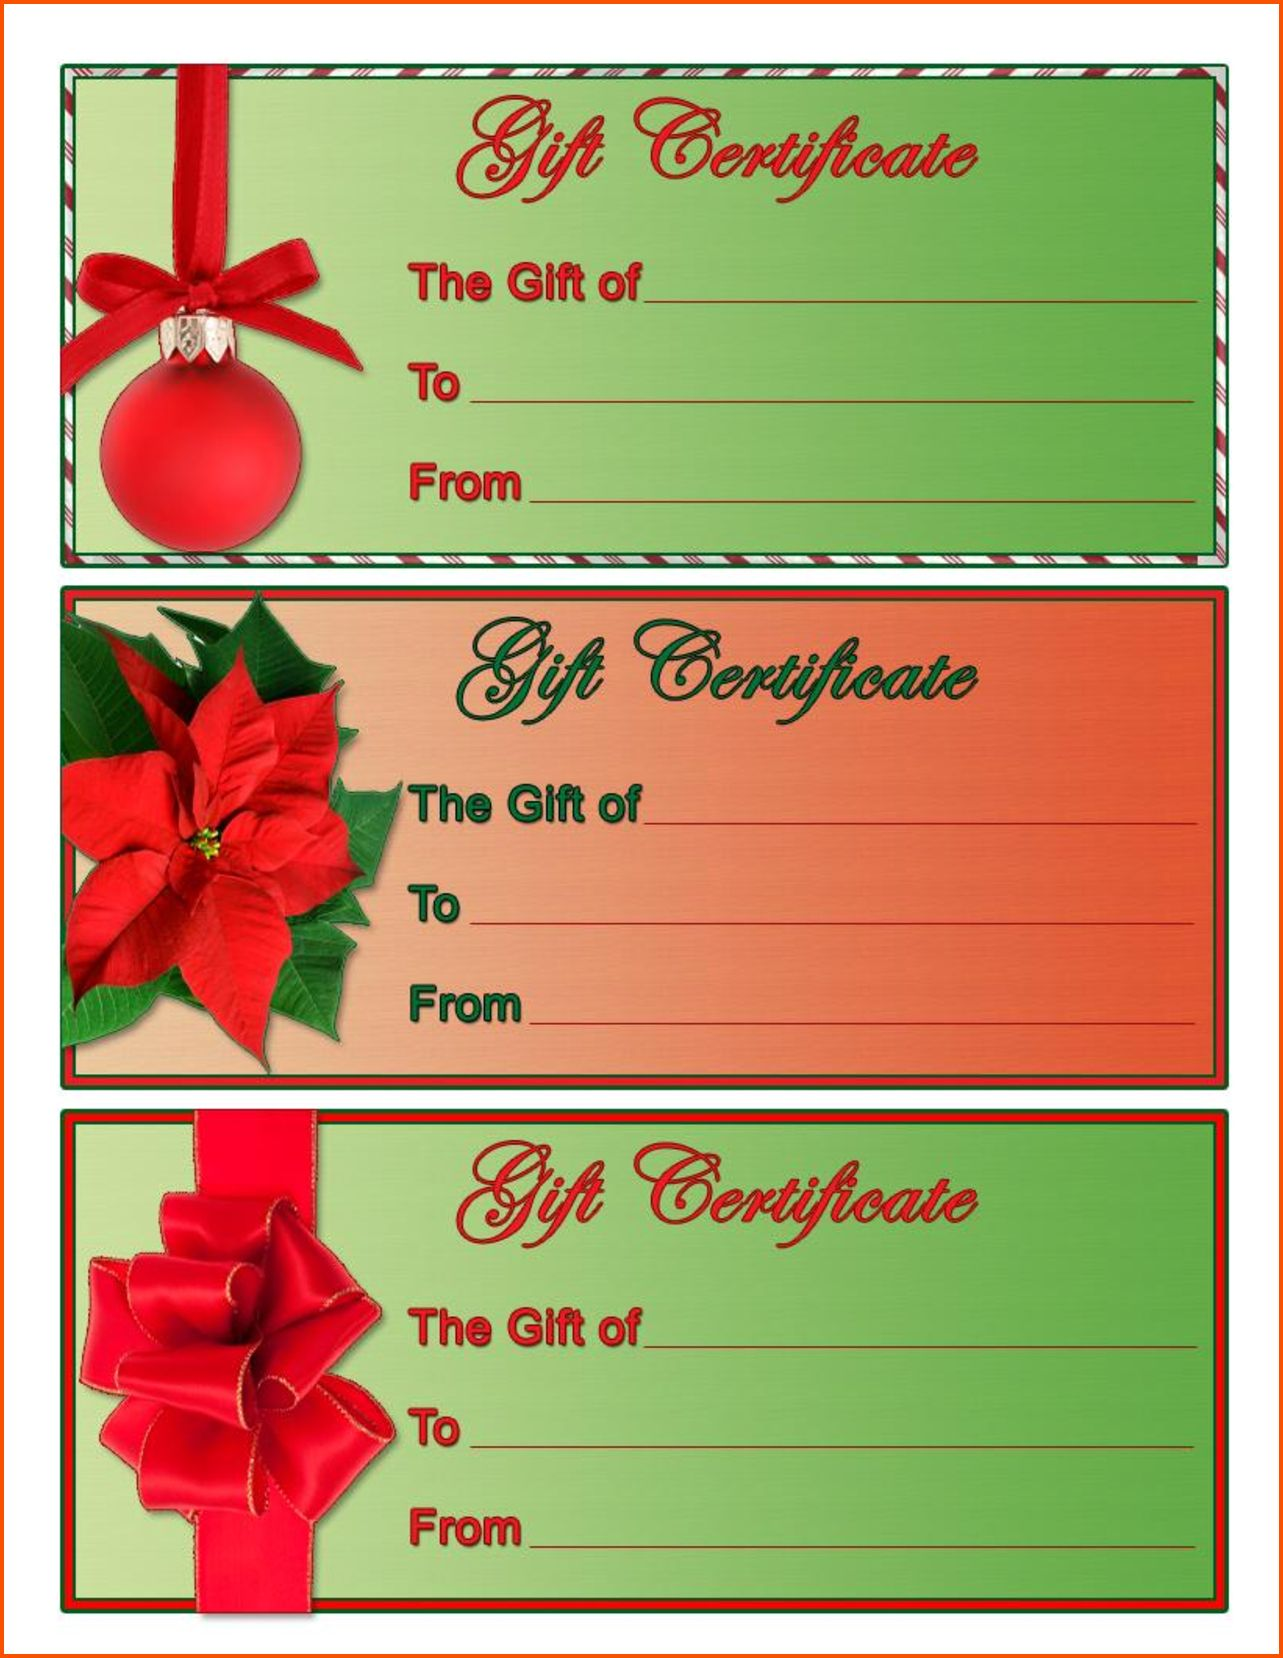 4 Christmas Gift Certificate Template Free Download Survey Th In 2020 Christmas Gift Certificate Template Christmas Gift Certificate Free Printable Gift Certificates Christmas certificate template free download